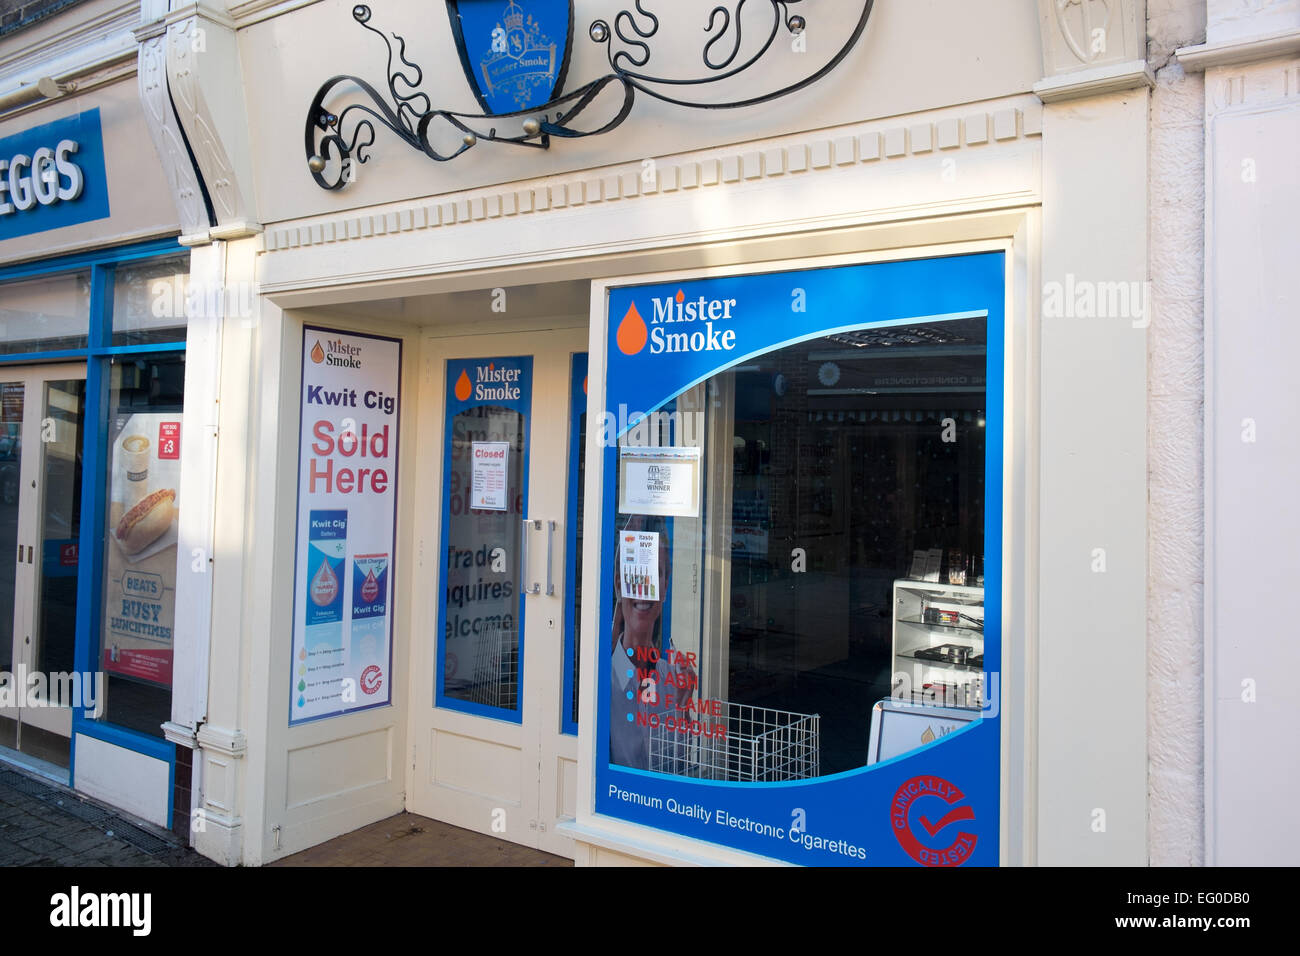 mister smoke shop in Belper, Derbyshire selling electronic e cigarettes and vaping mods - Stock Image